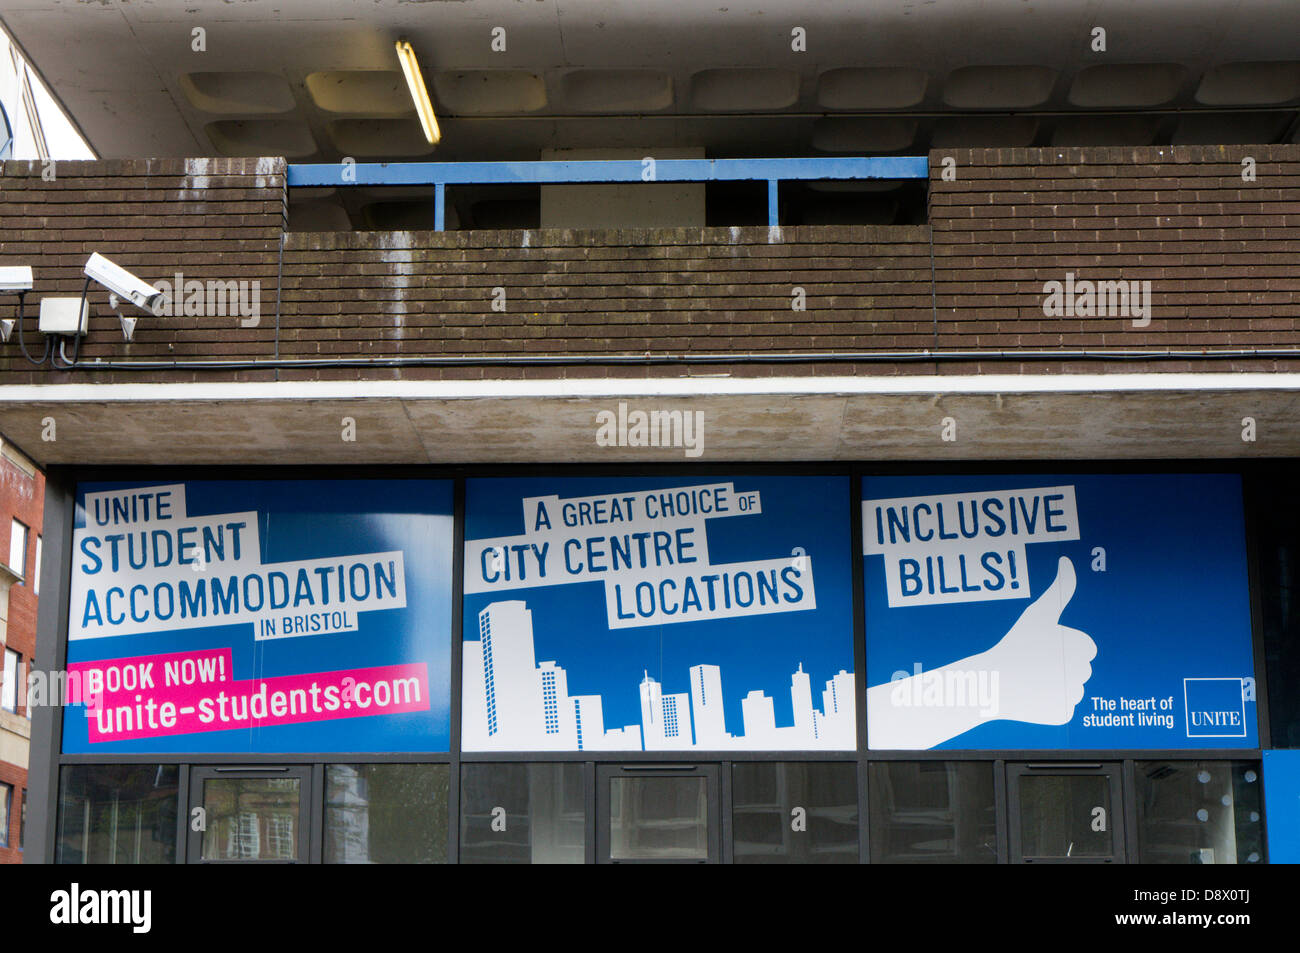 Signs for Unite Student Accommodation in Bristol, England. - Stock Image